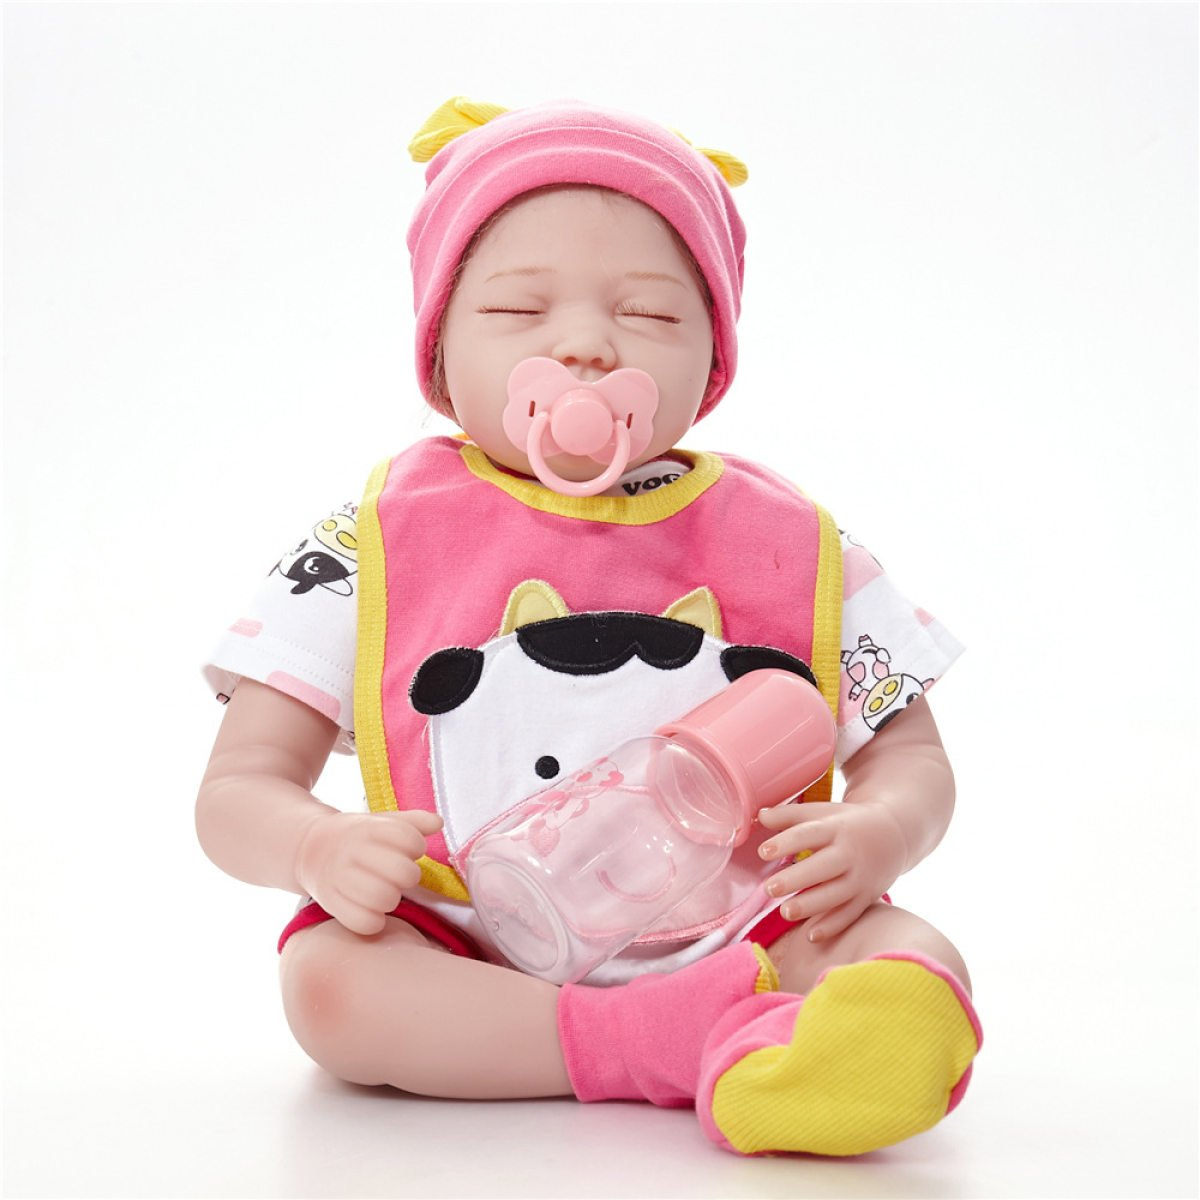 Reborn Baby Dolls Handmade Realistic Silicone Vinyl Lifelike Baby Doll Magnetic Mouth Soft Simulation 22 Inch 55 Cm Eyes Open Girl Favorite Gift Yihang Processing plant